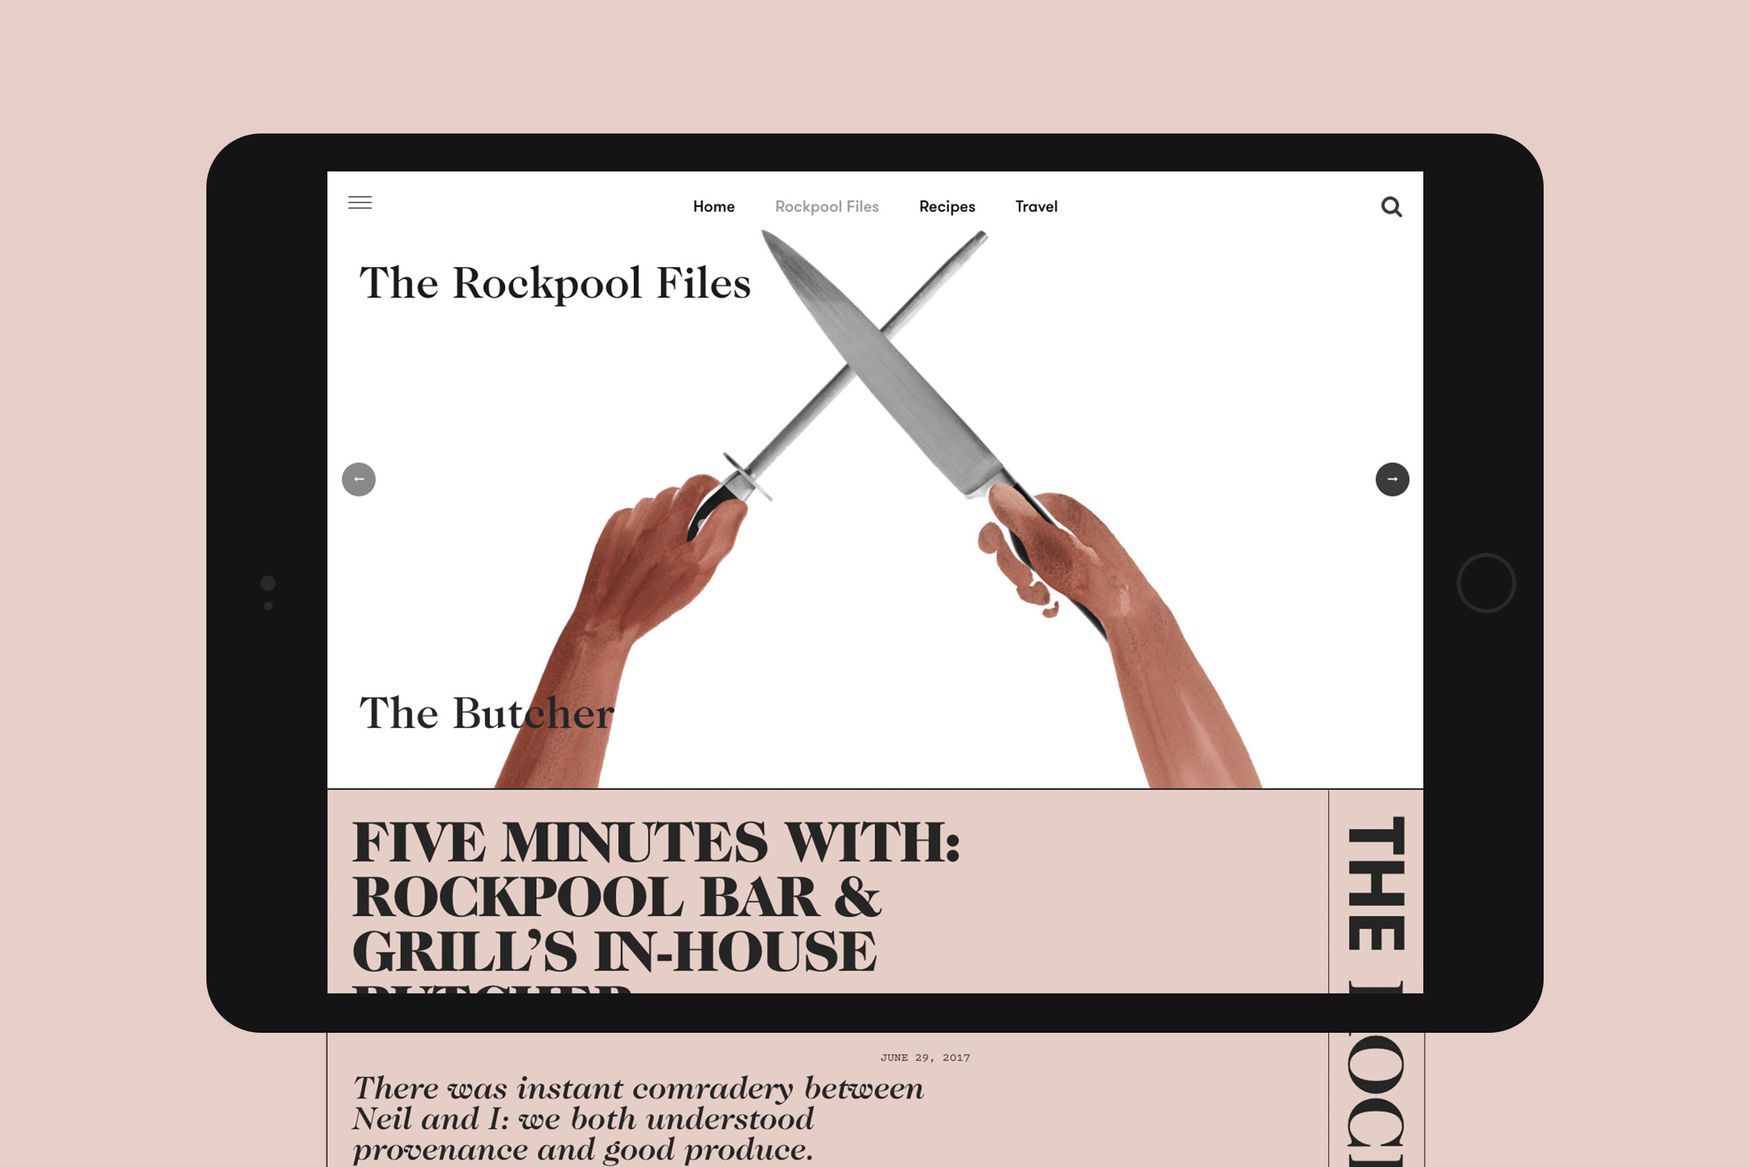 The Rockpool Files